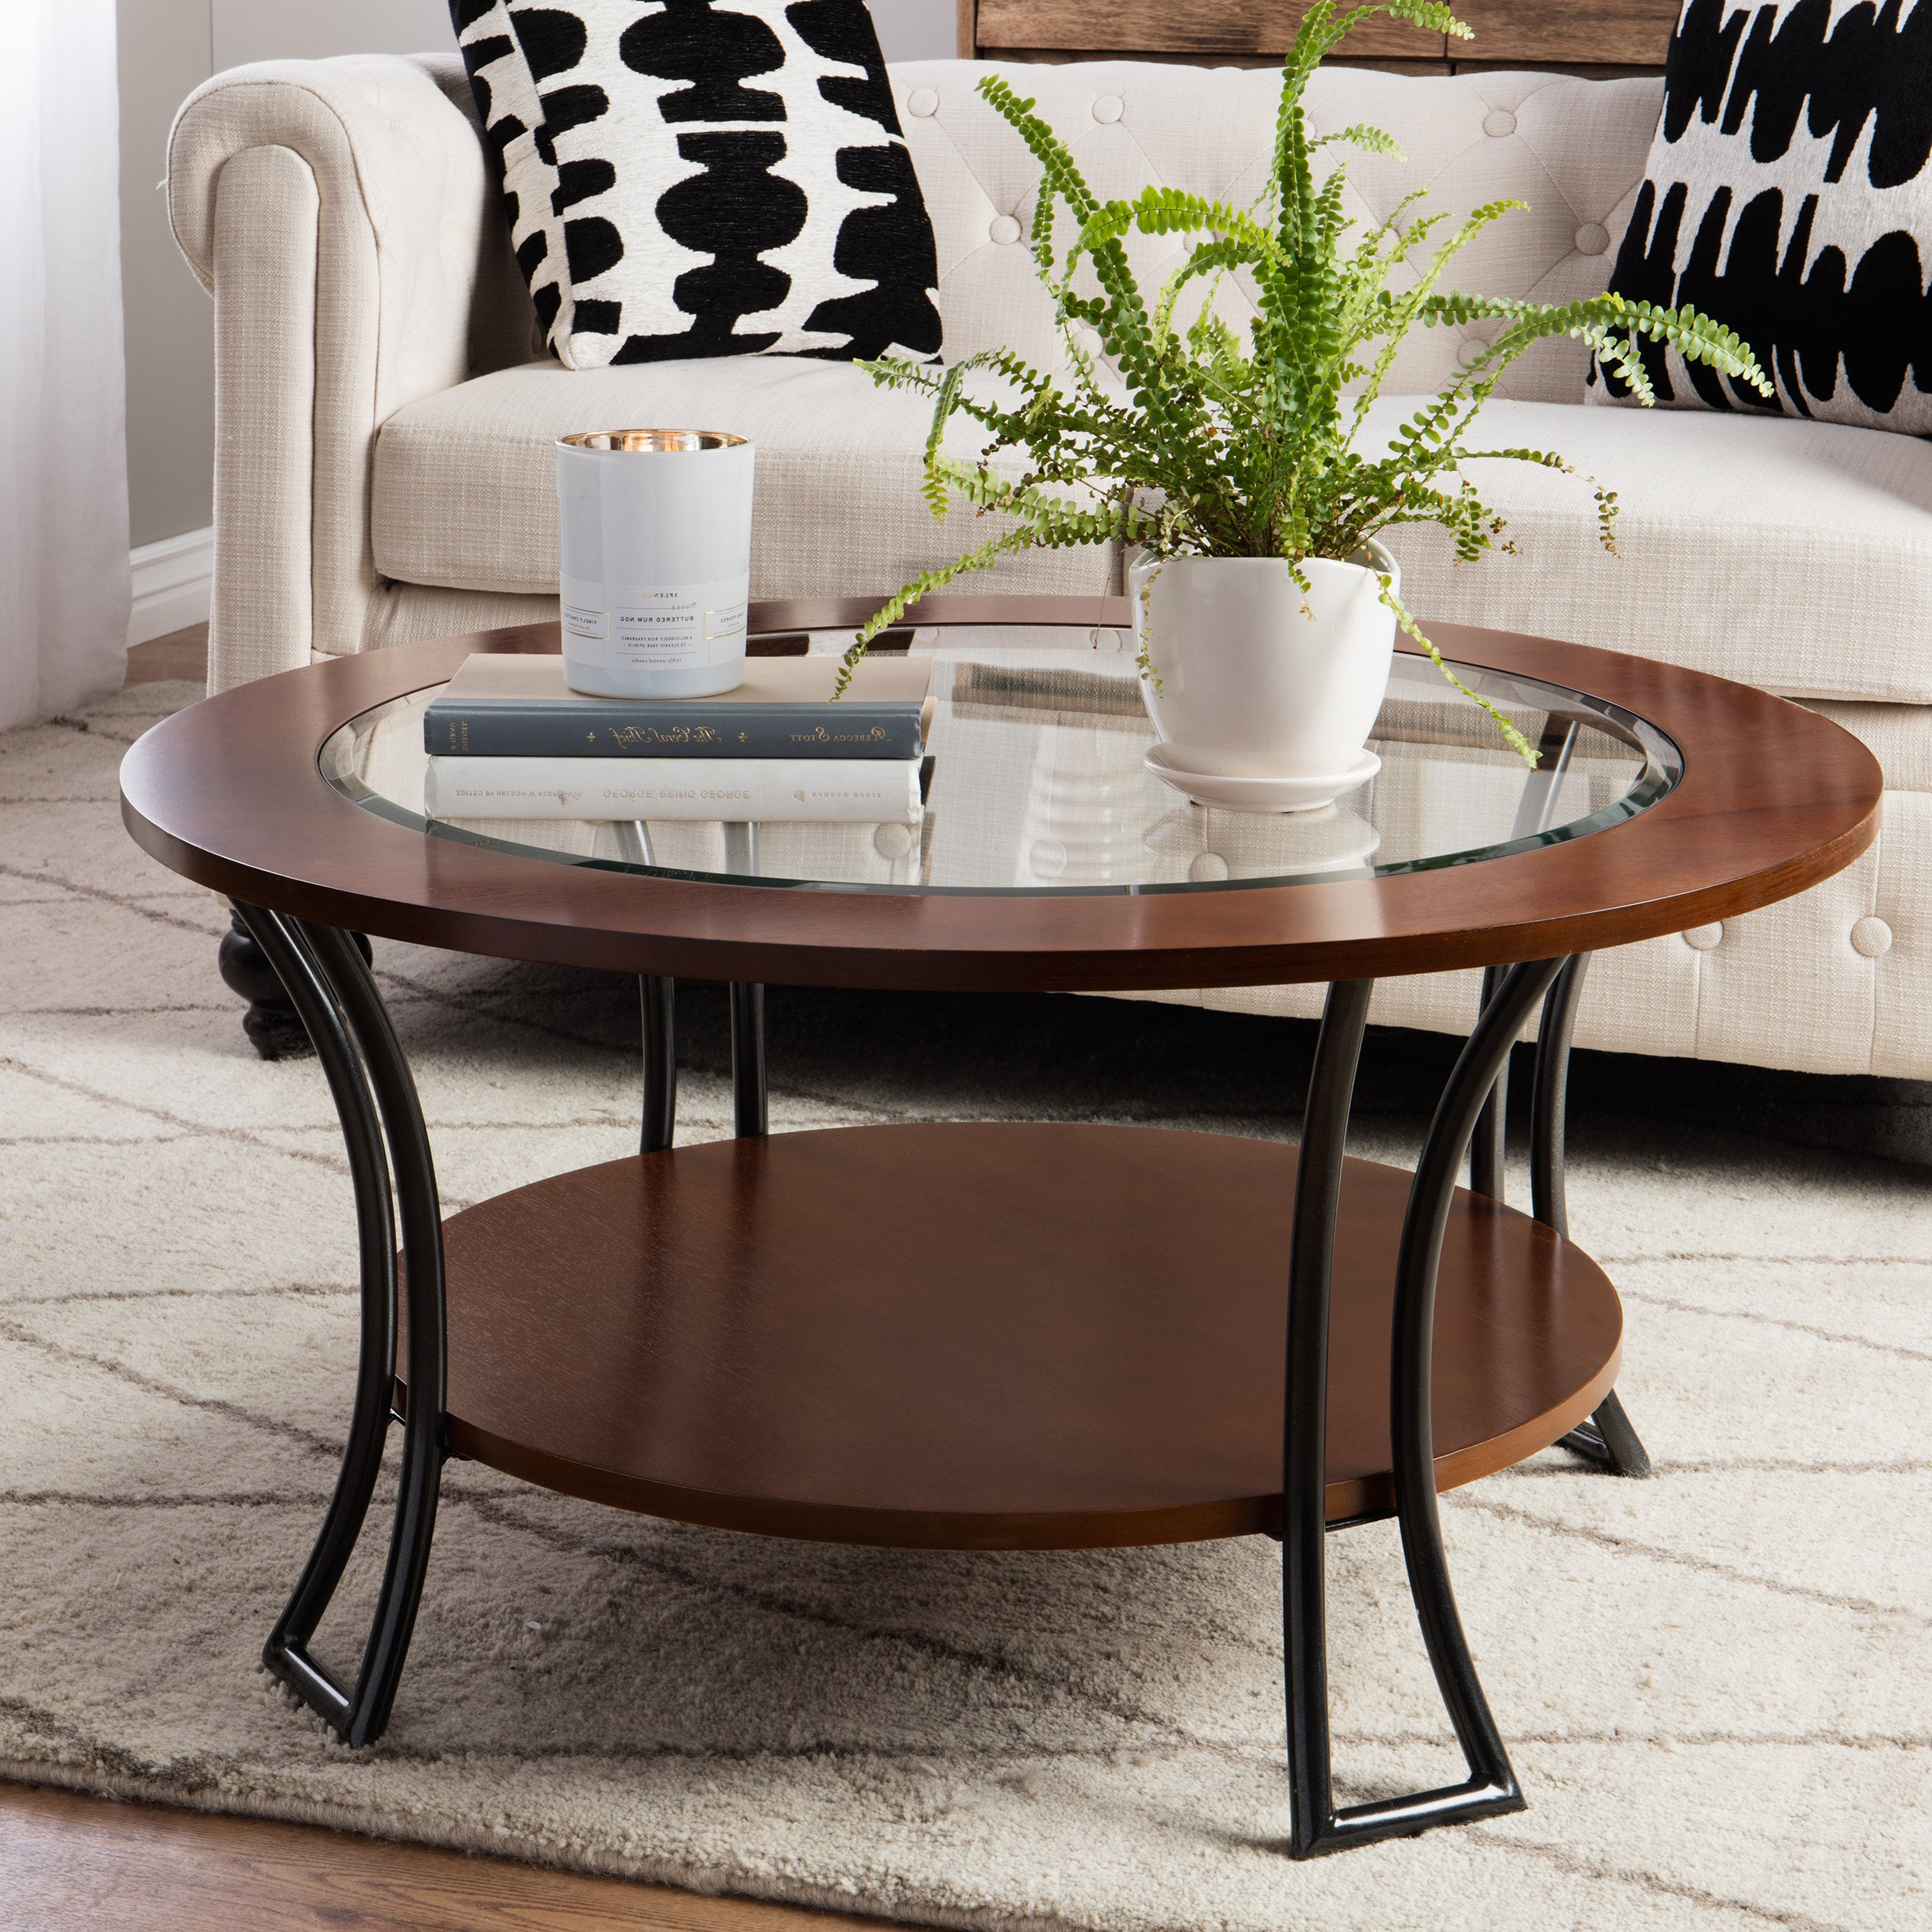 Best And Newest Copper Grove Halesia Chocolate Bronze Round Coffee Tables In Copper Grove Carlisle Walnut/ Charcoal Grey Round Coffee Table (View 3 of 20)